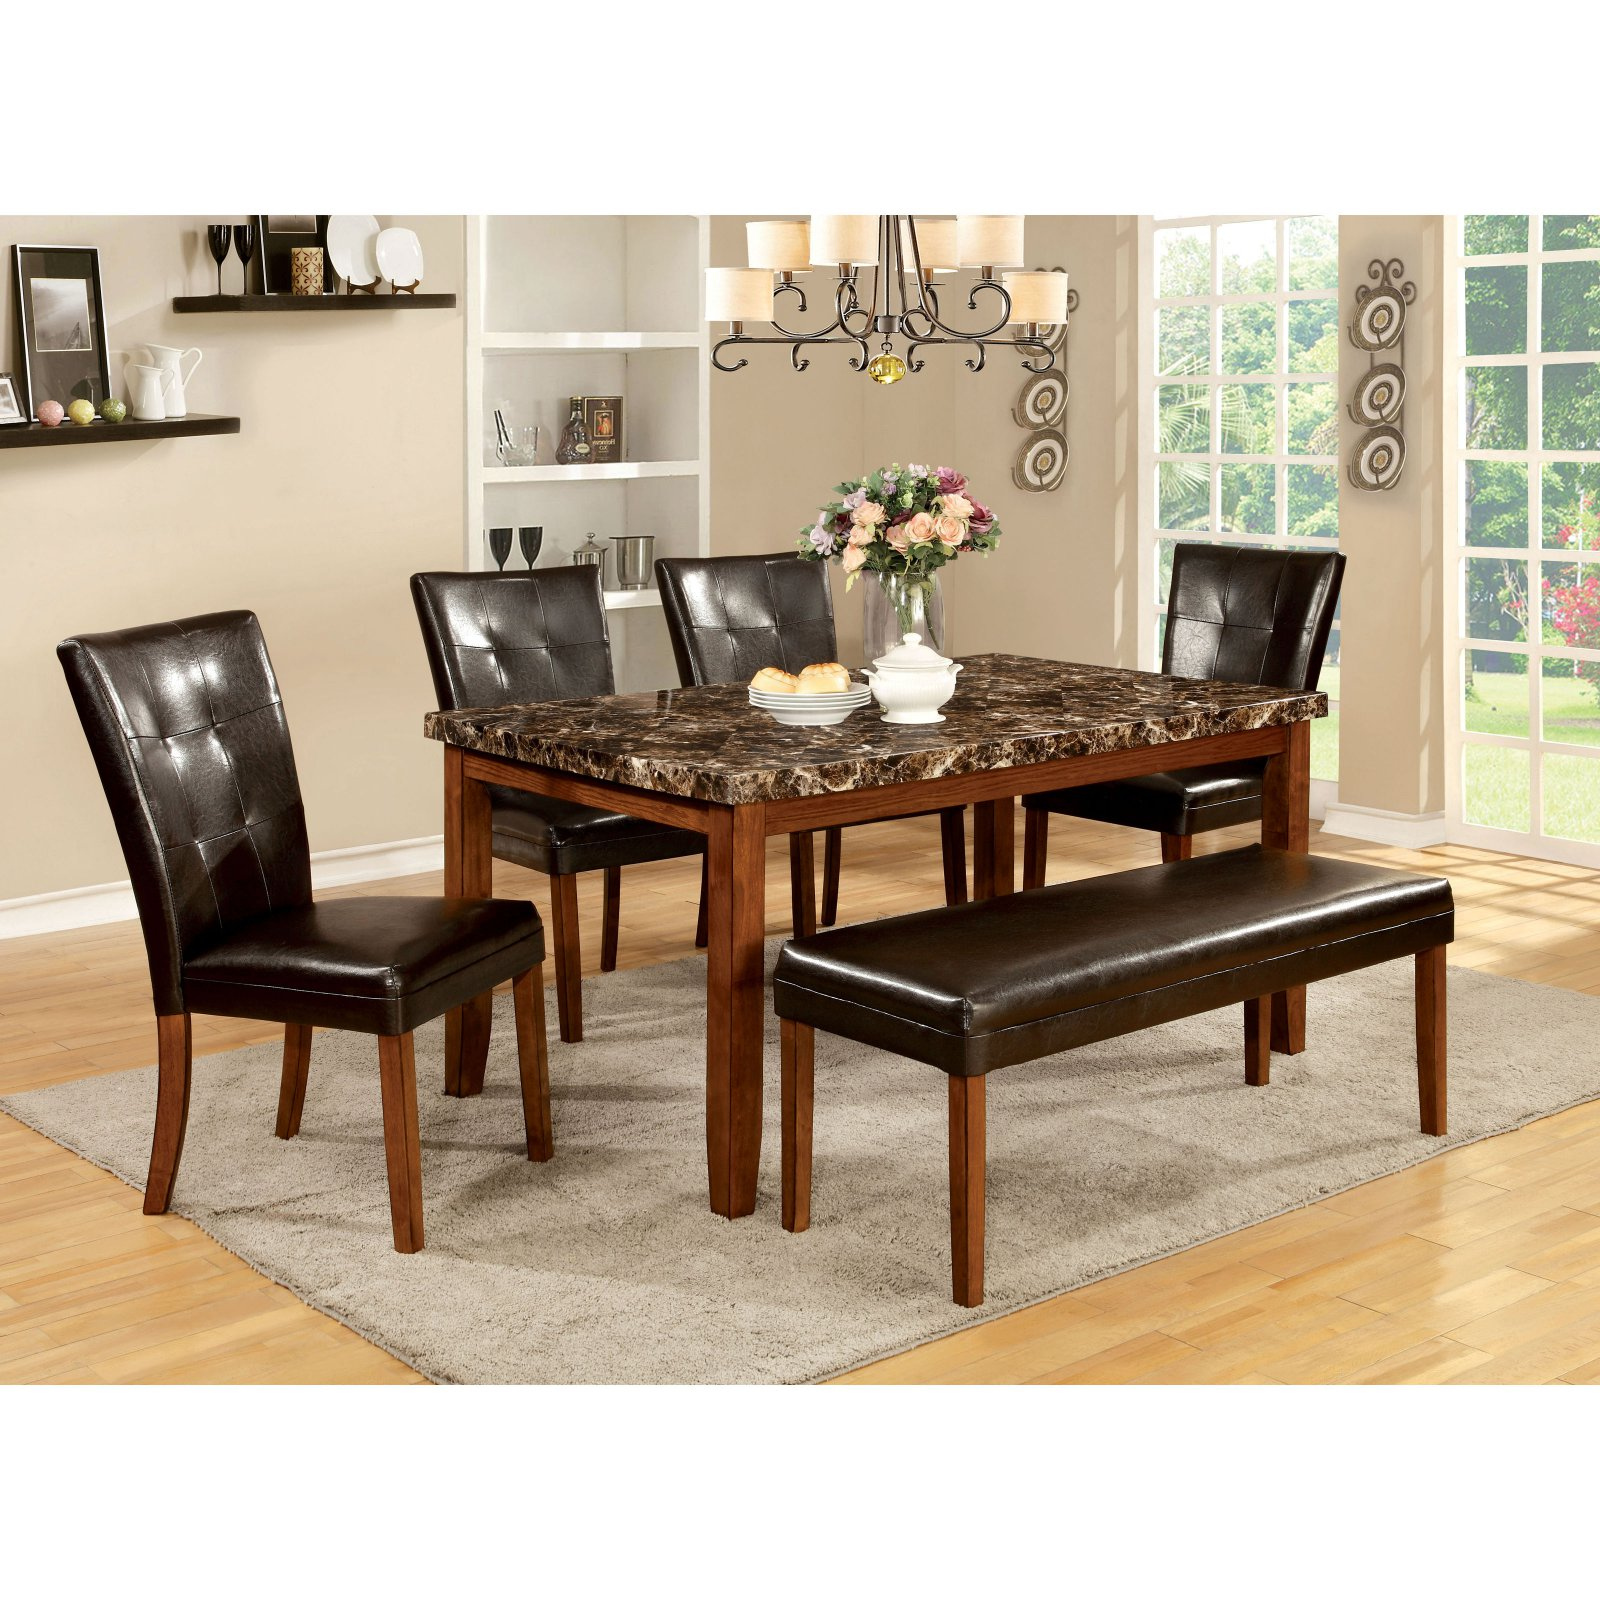 Furniture of America Wilmont Dining Table